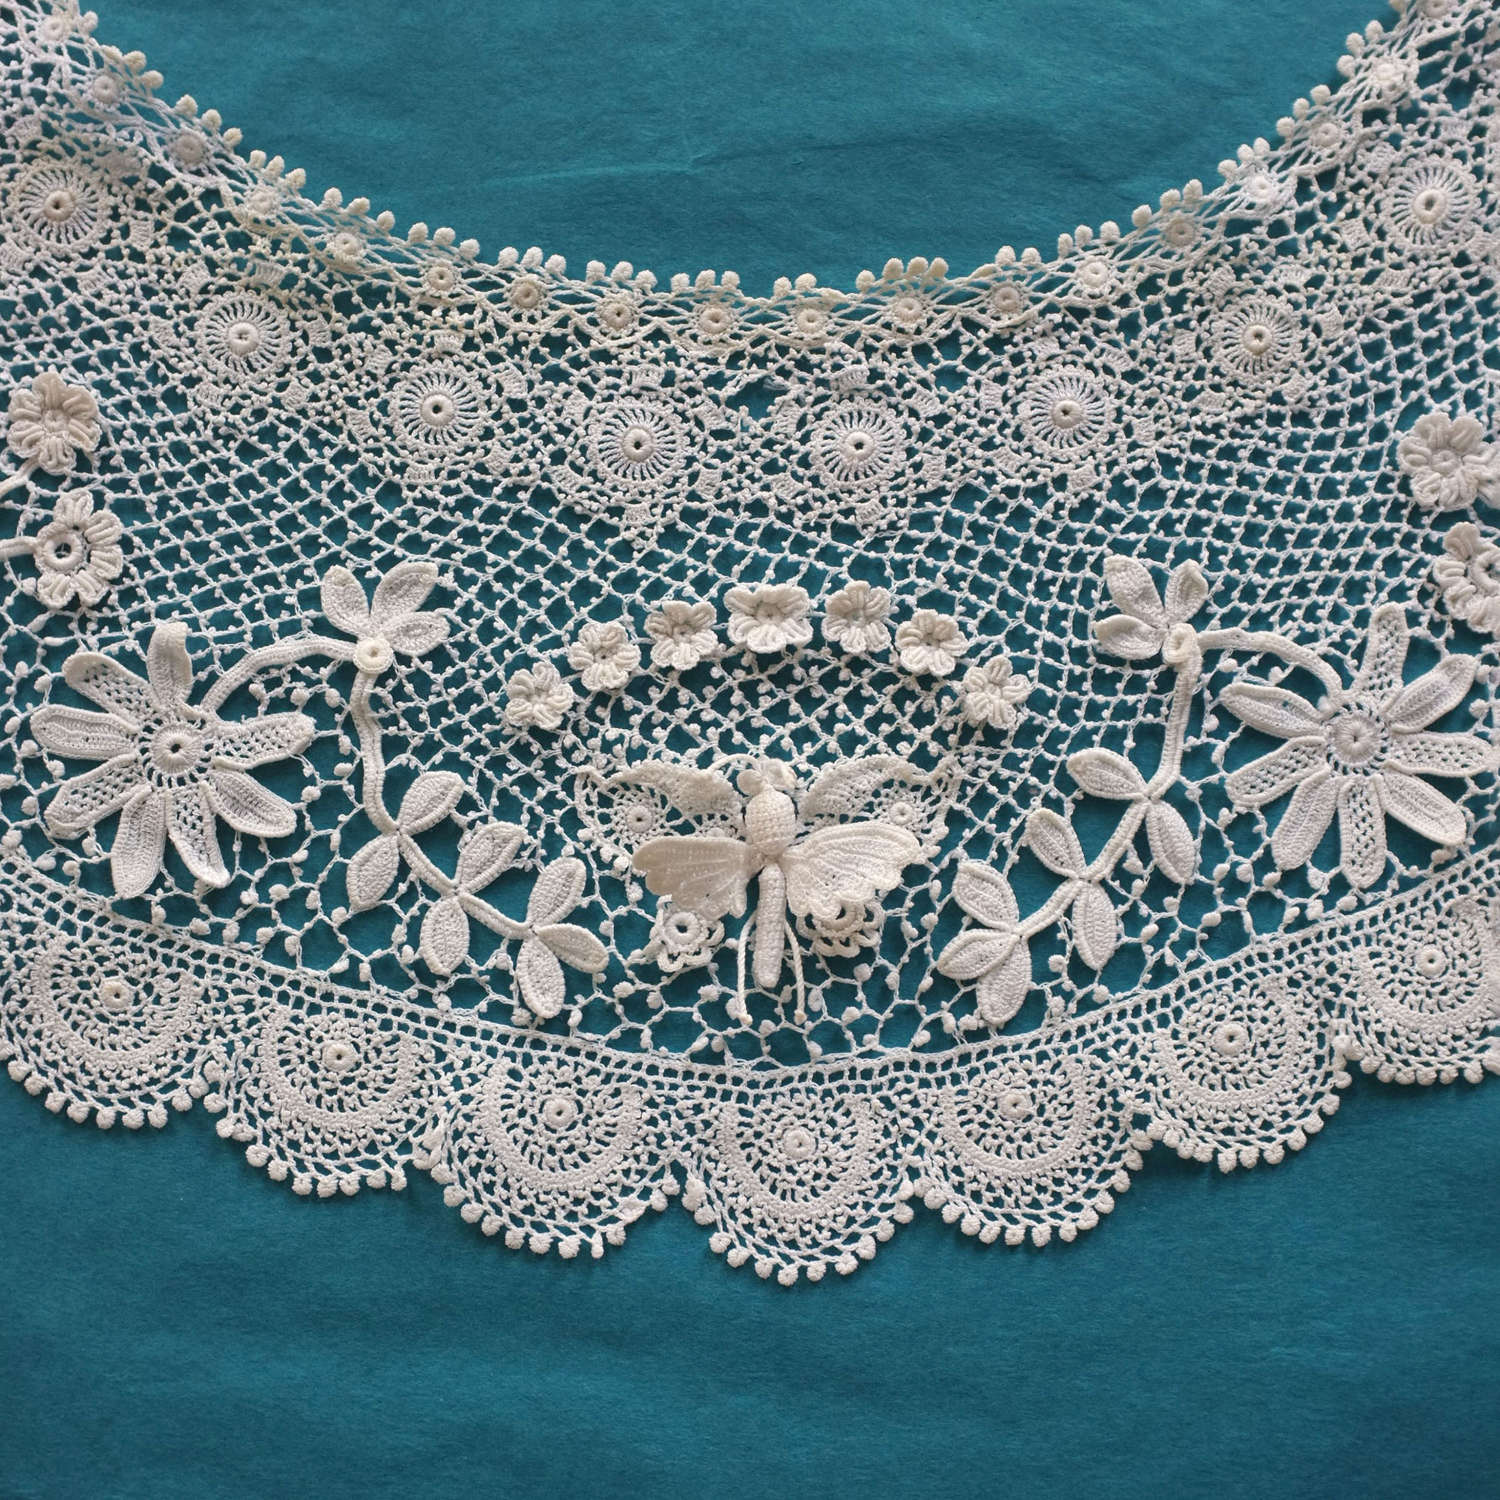 Antique Crochet Lace Collar With Butterflies